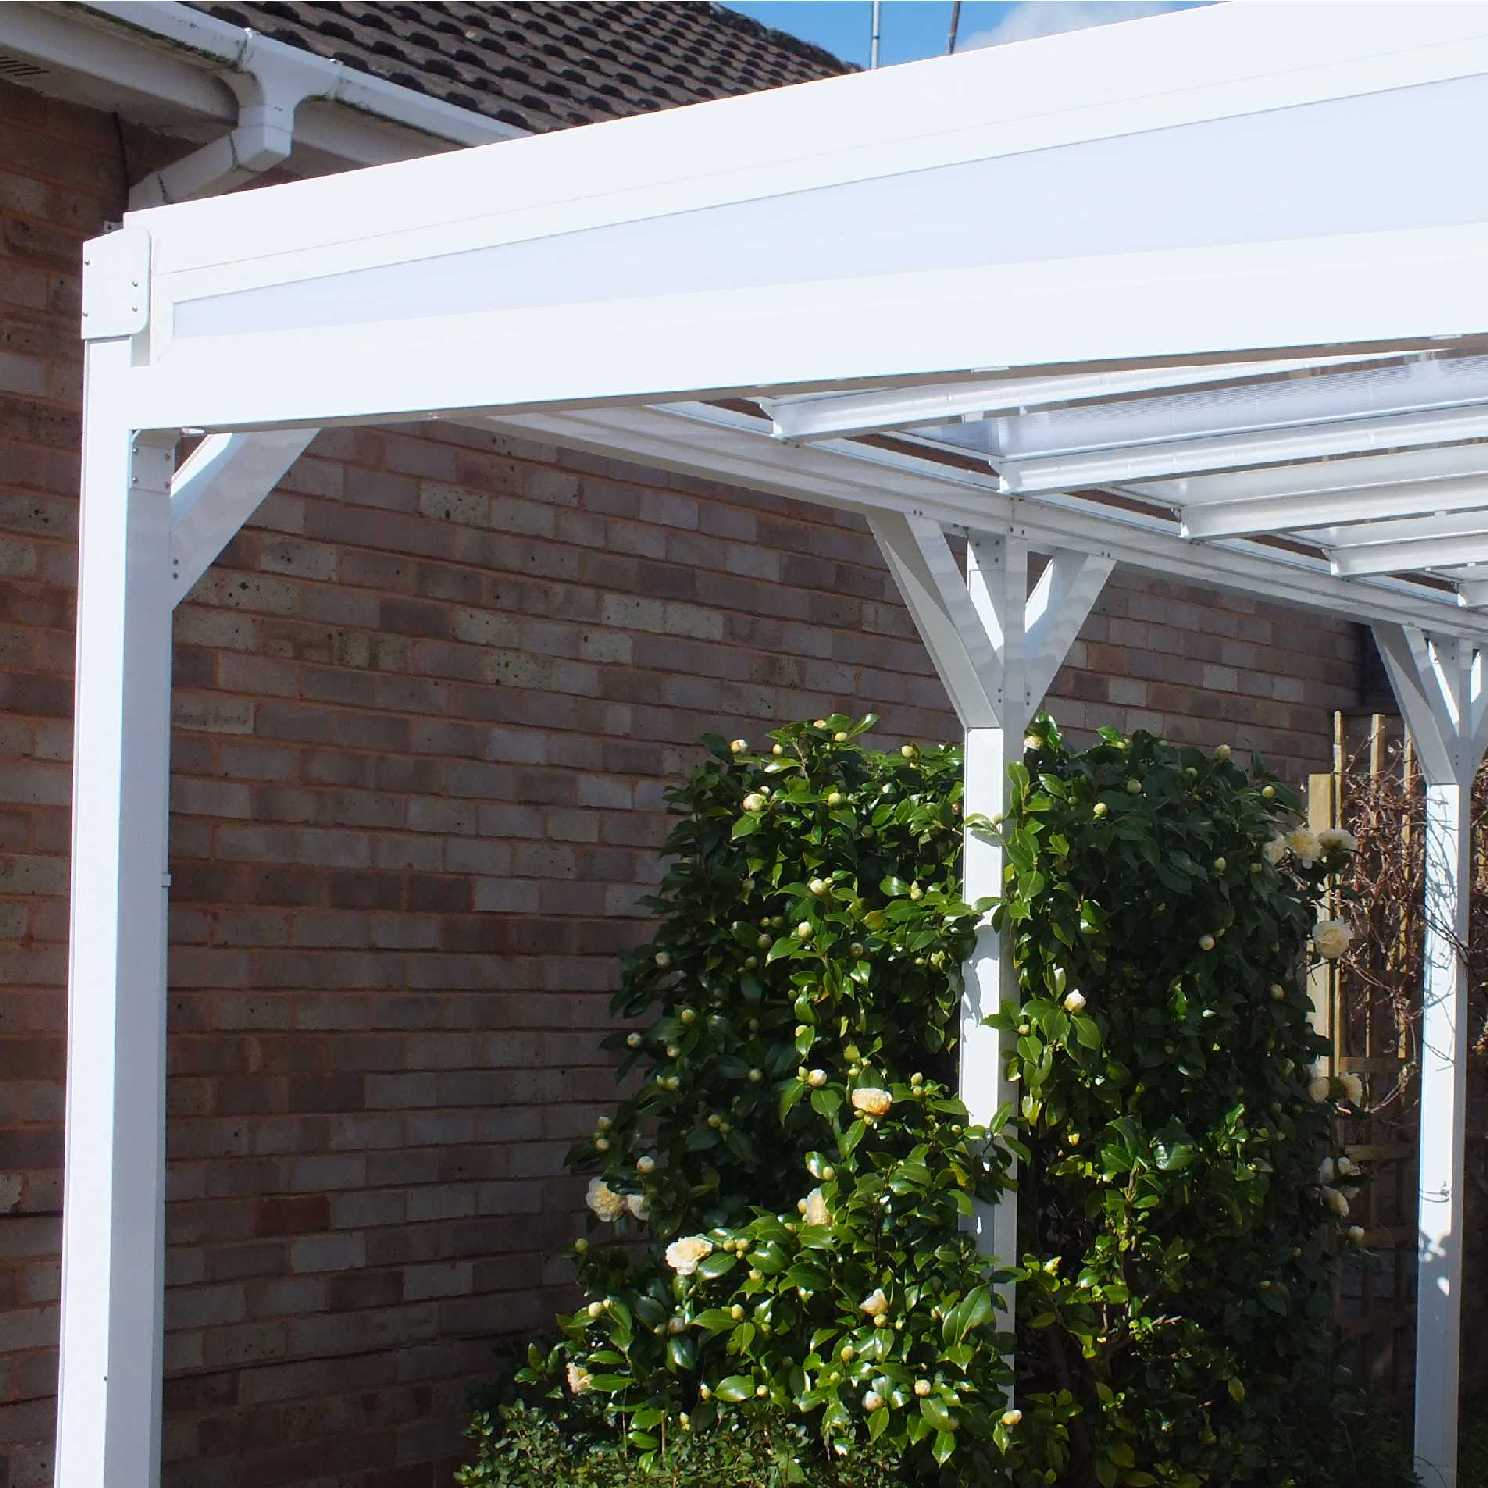 Omega Smart Lean-To Canopy with 16mm Polycarbonate Glazing - 5.6m (W) x 4.0m (P), (3) Supporting Posts from Omega Build